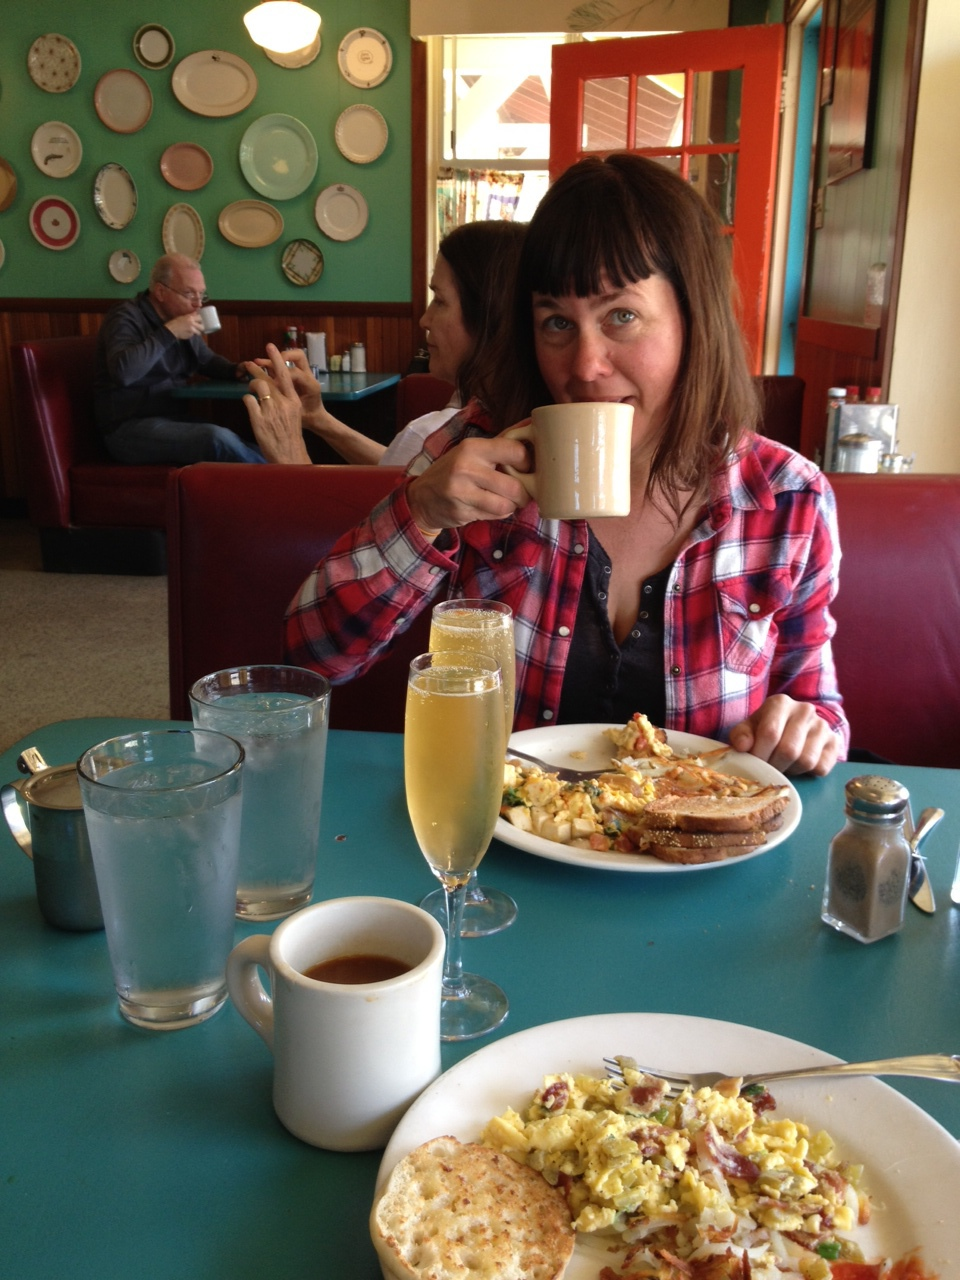 Kelli's post-birthday breakfast at the Pine Cone Diner